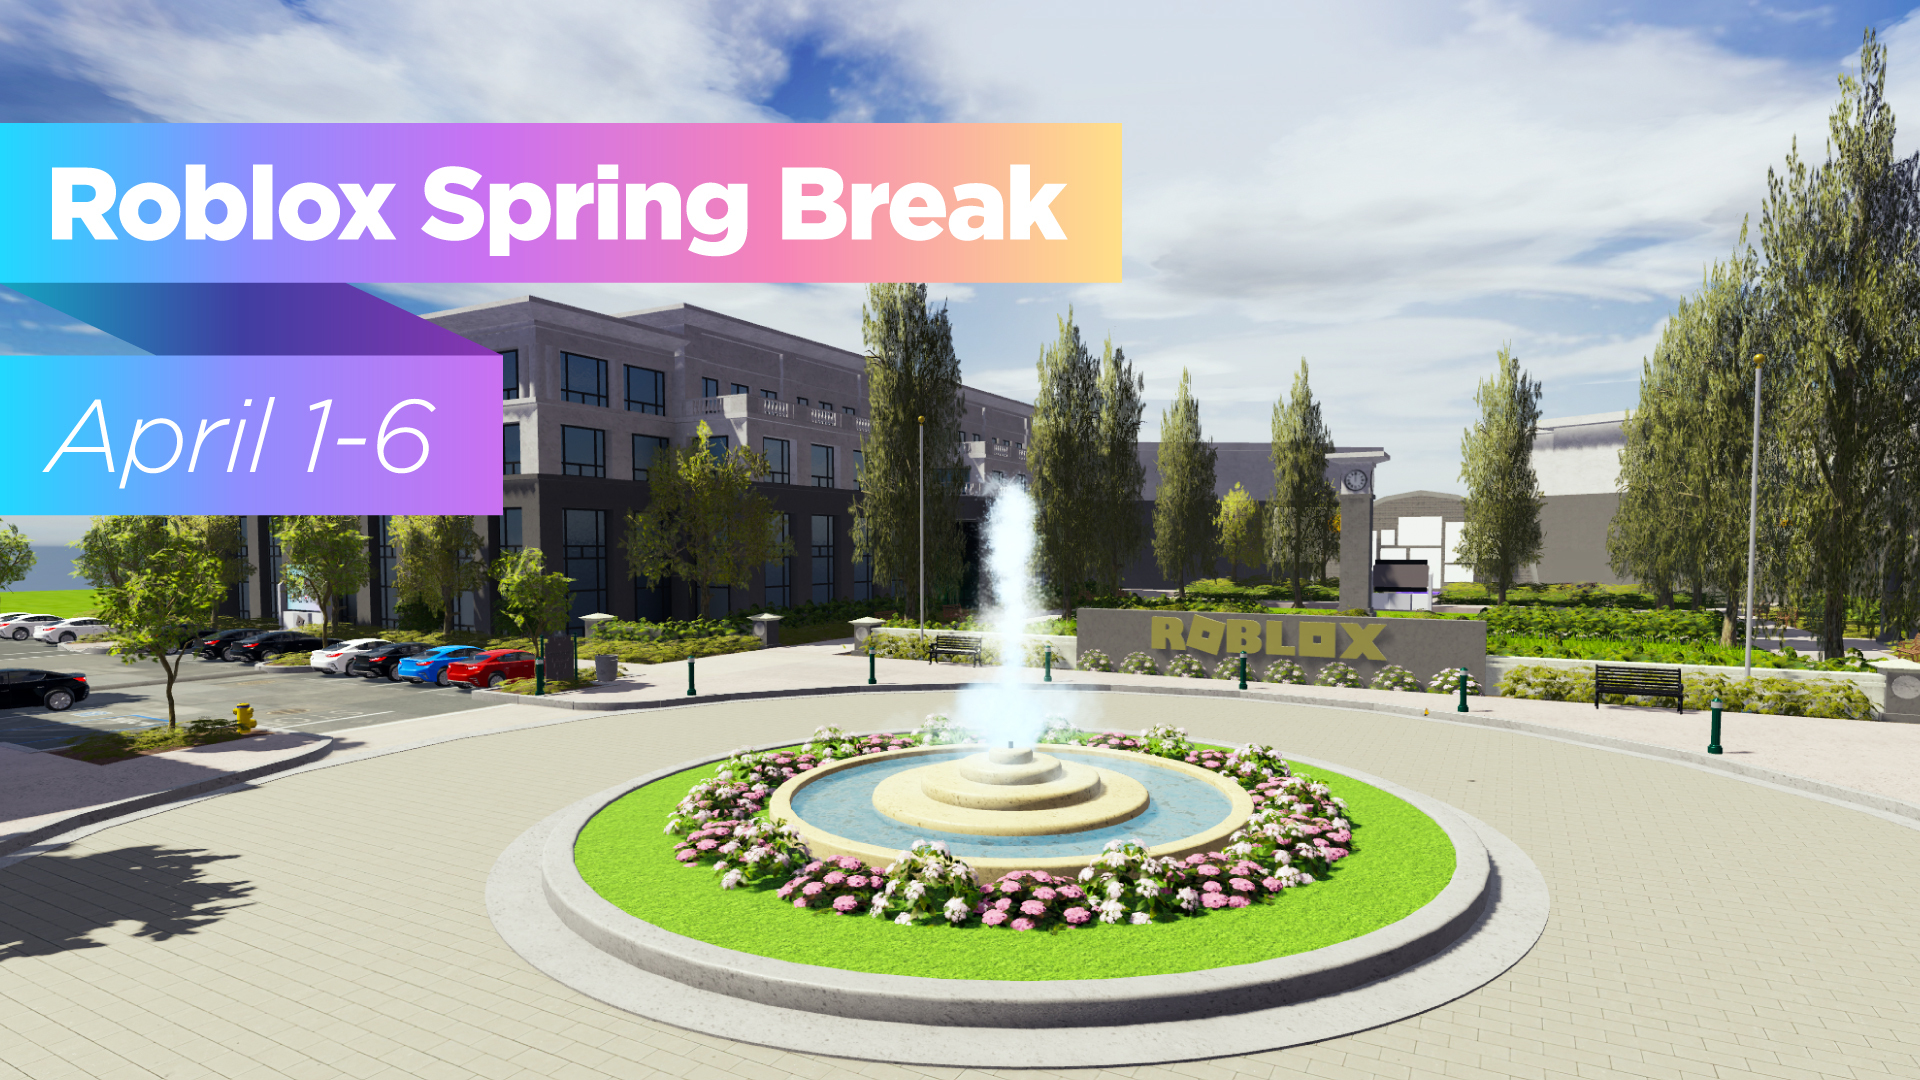 why-we're-bringing-spring-break-to-roblox-employees